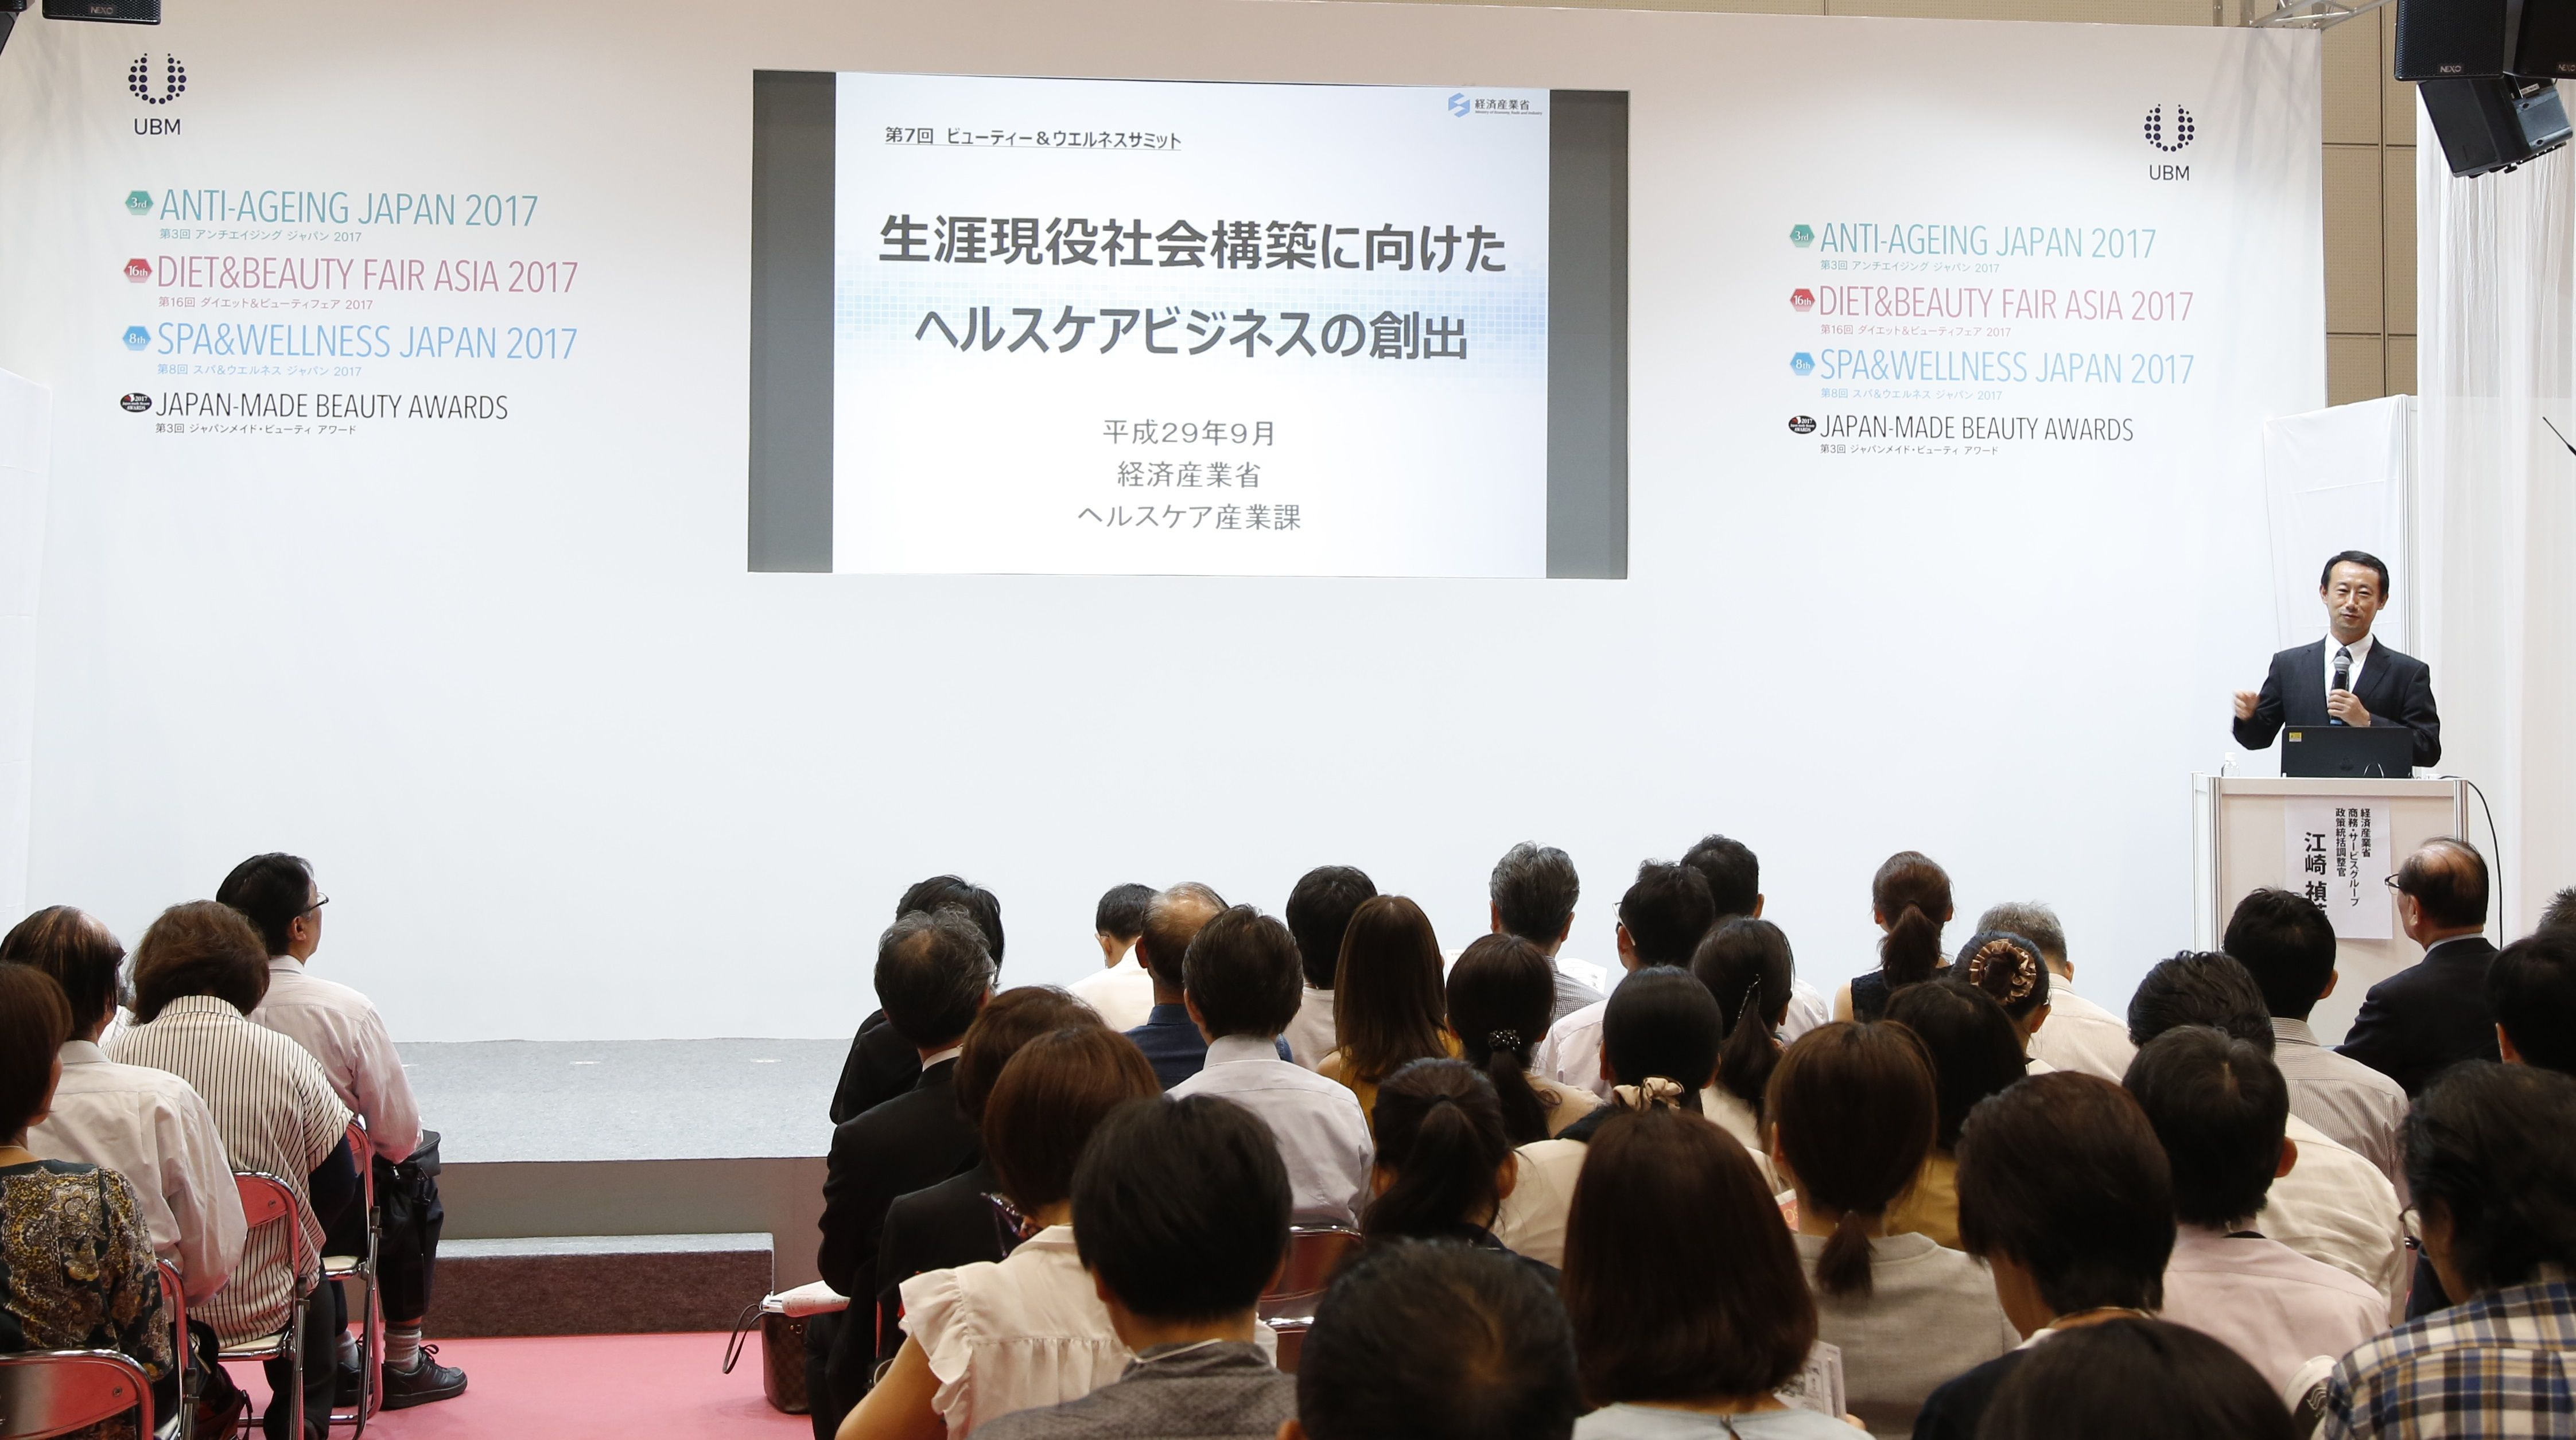 Images of 西郷隆輝 - JapaneseClass.jp